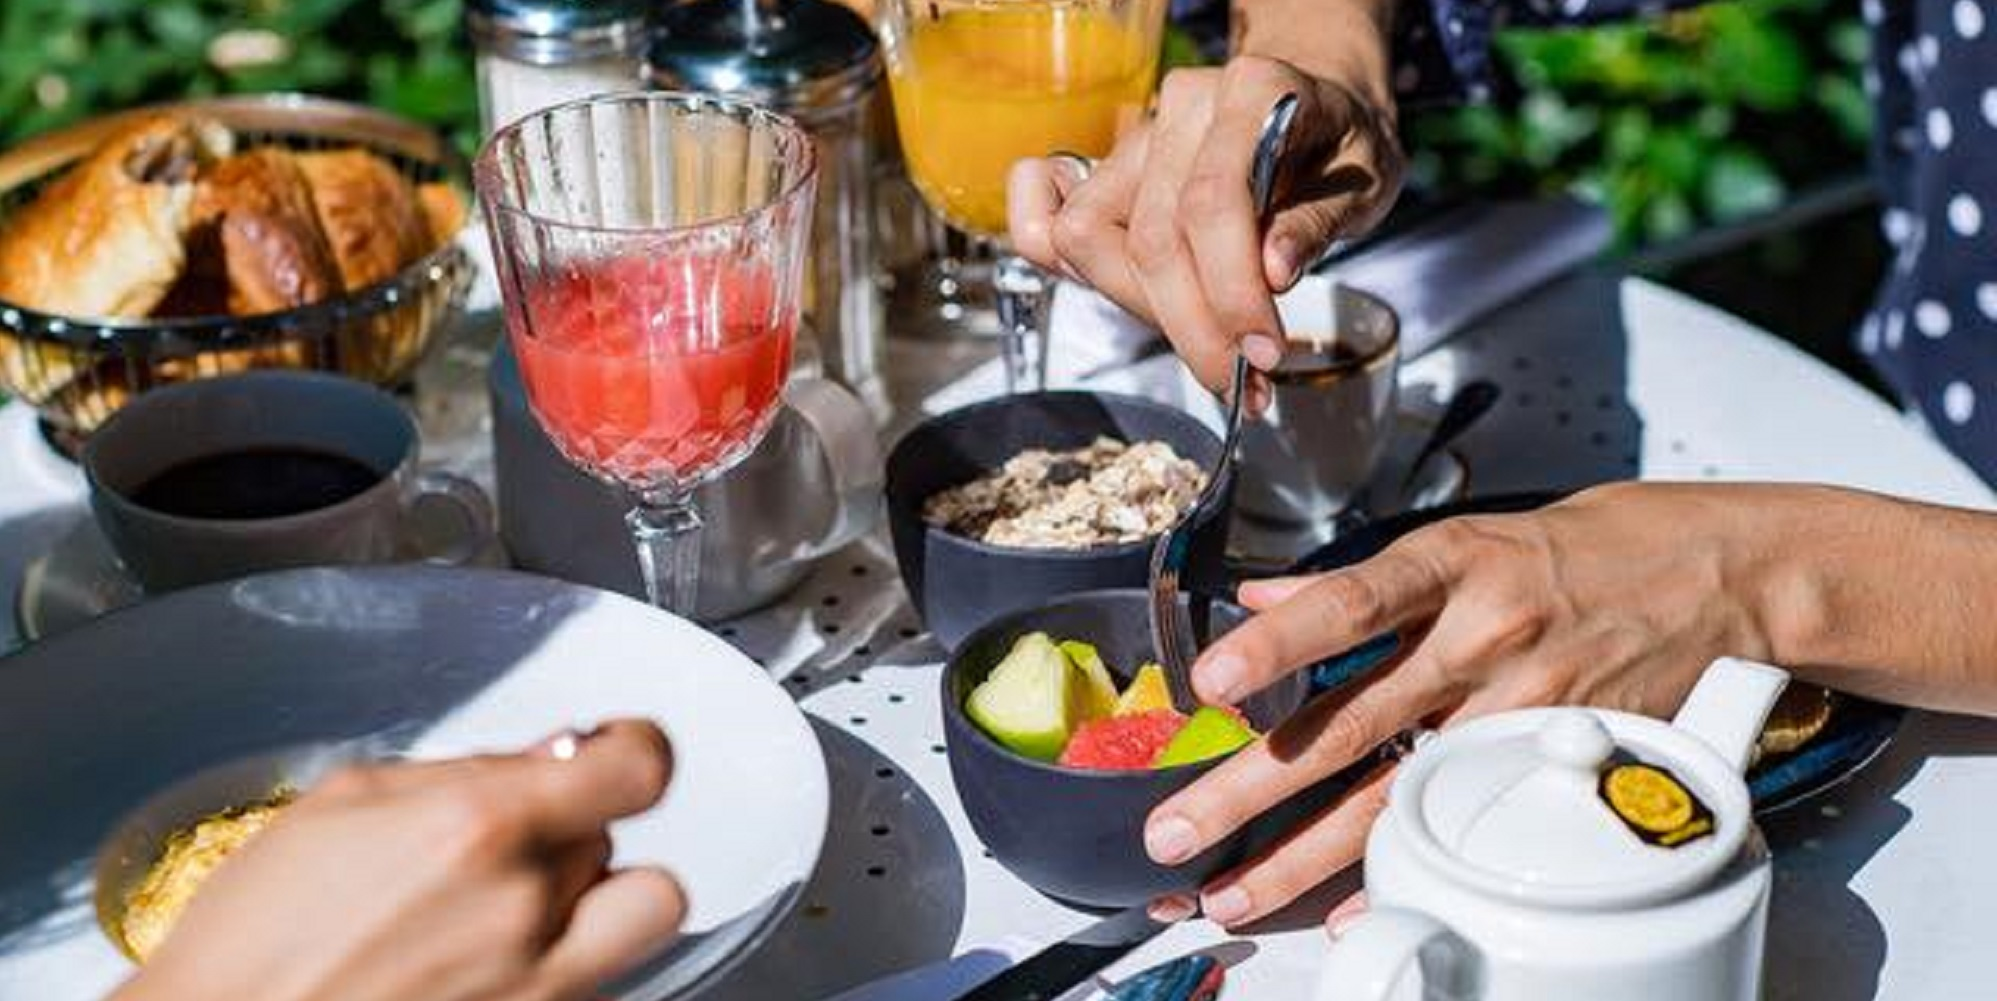 Brunch hotel particulier 75018 paris oubruncher for Le jardin custine 75018